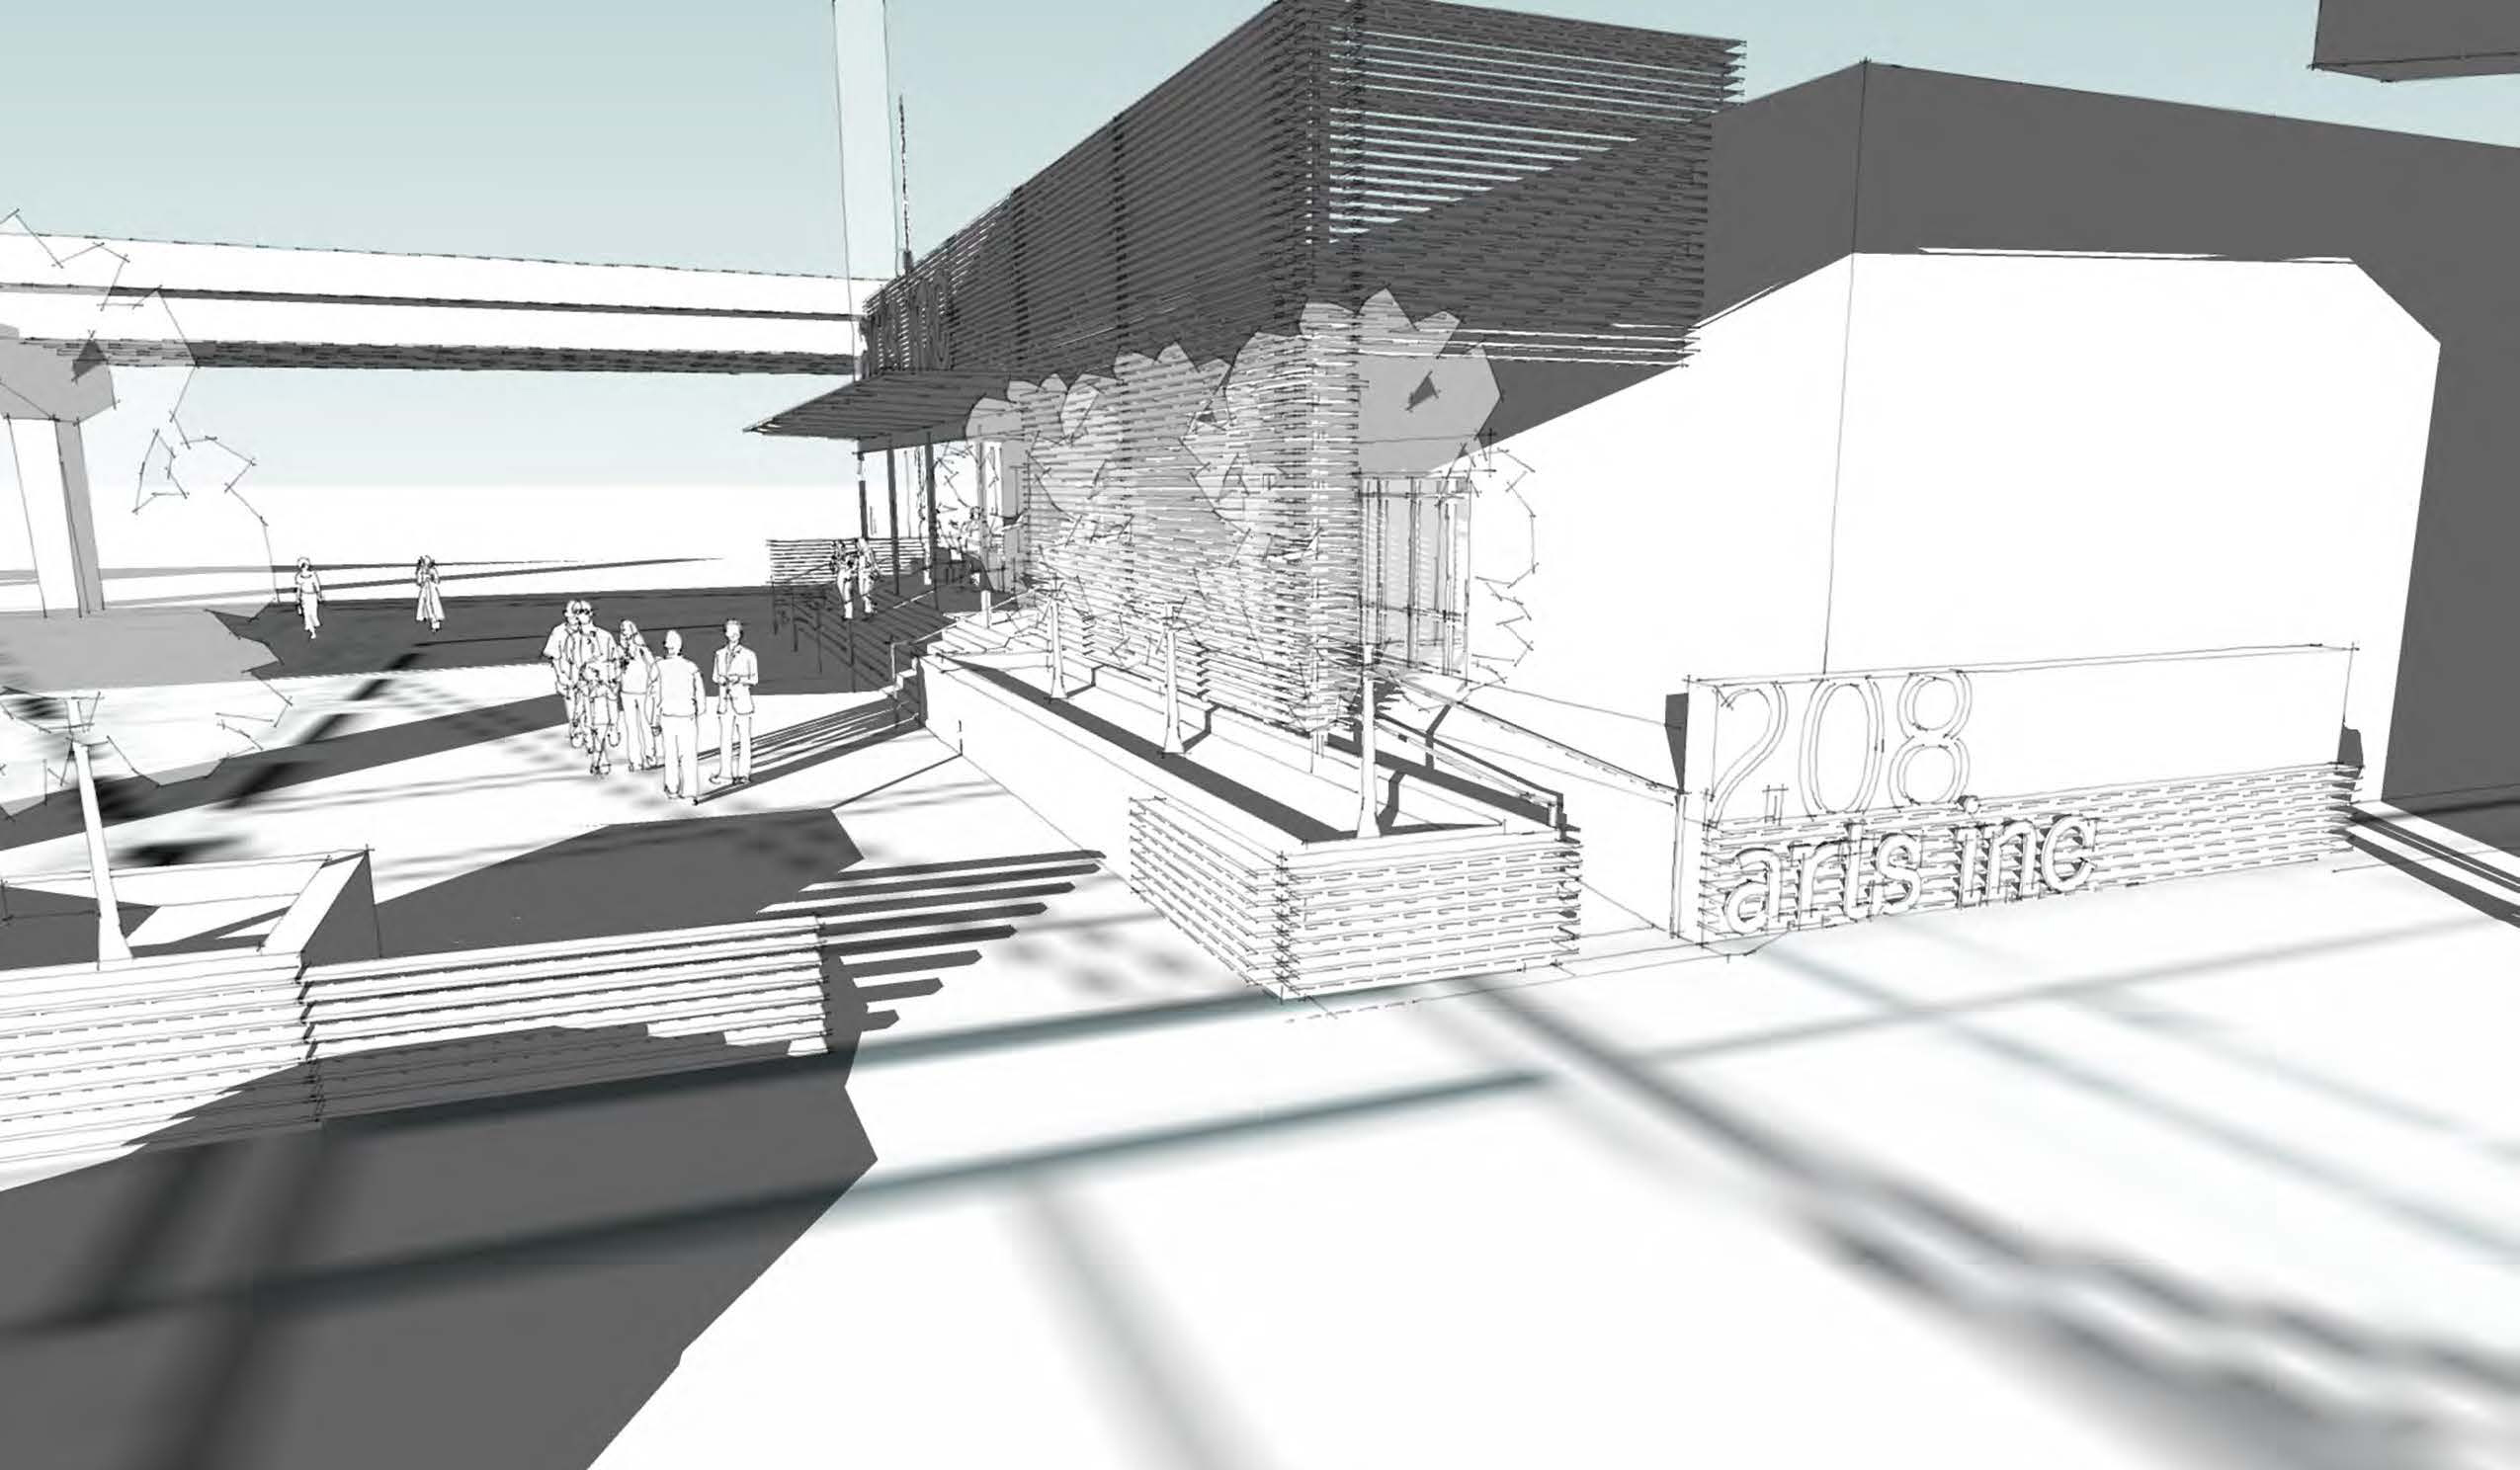 Arts Incubator Space - Program-Plan_Narrative_Renderings_6.1